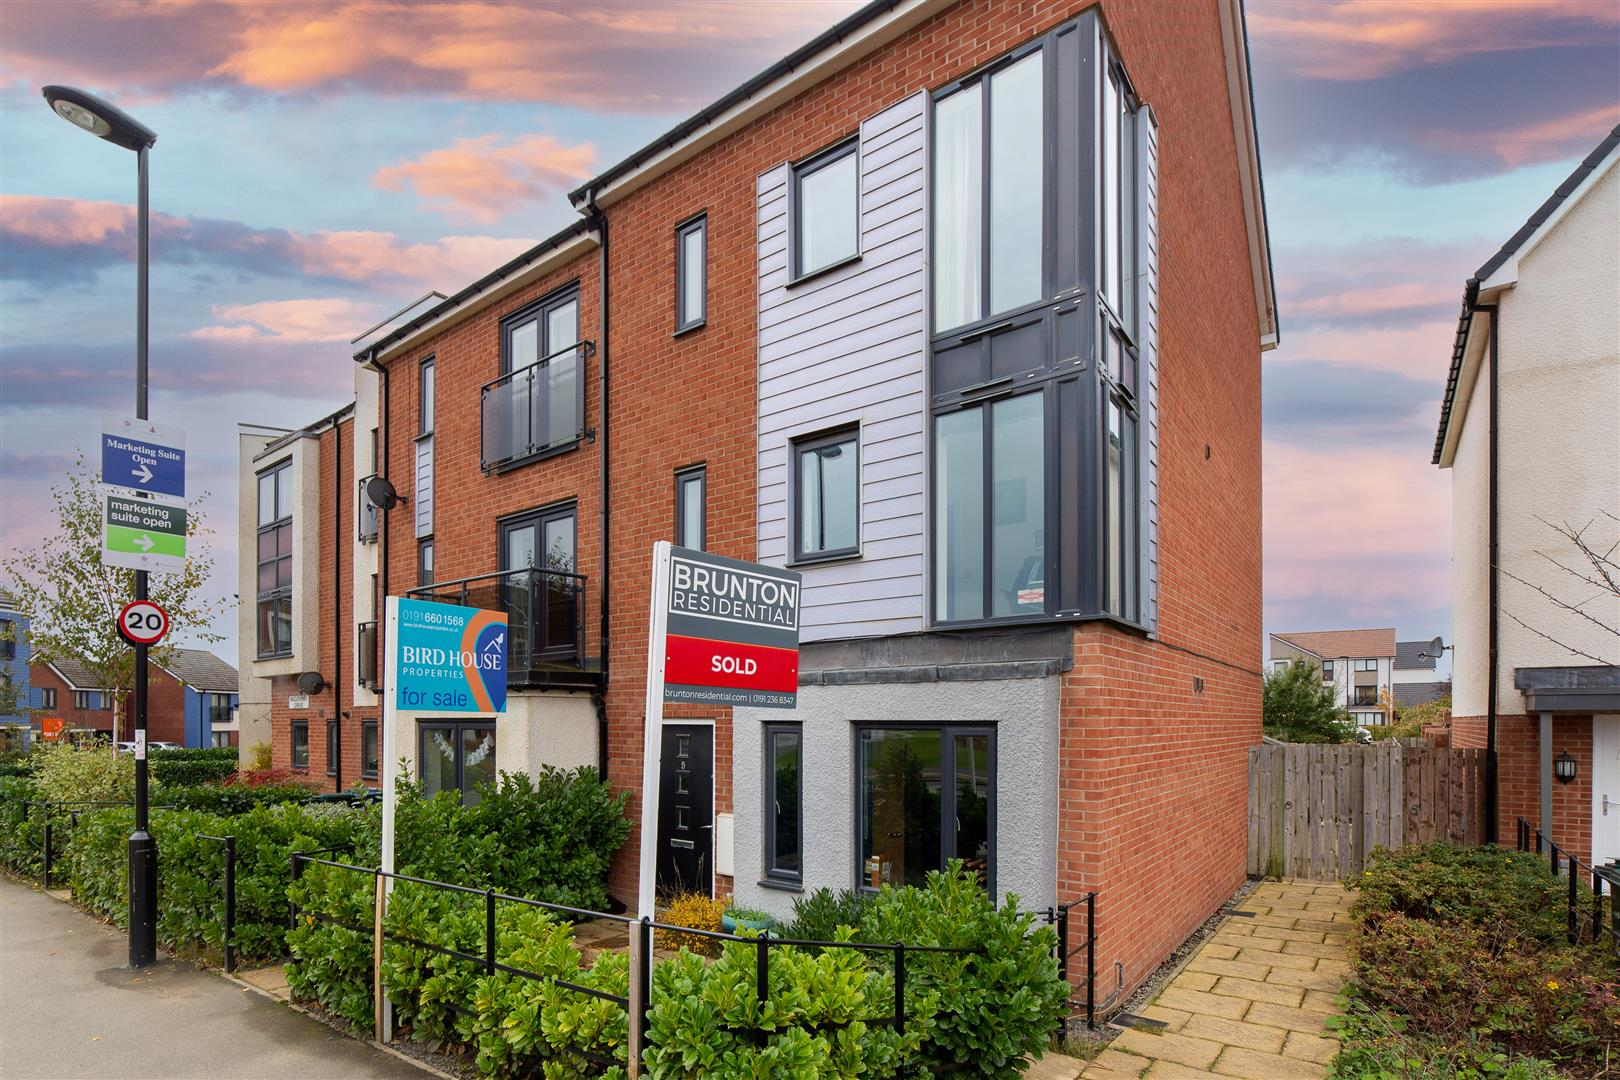 4 bed town house for sale in Newcastle Upon Tyne, NE13 9BX  - Property Image 1